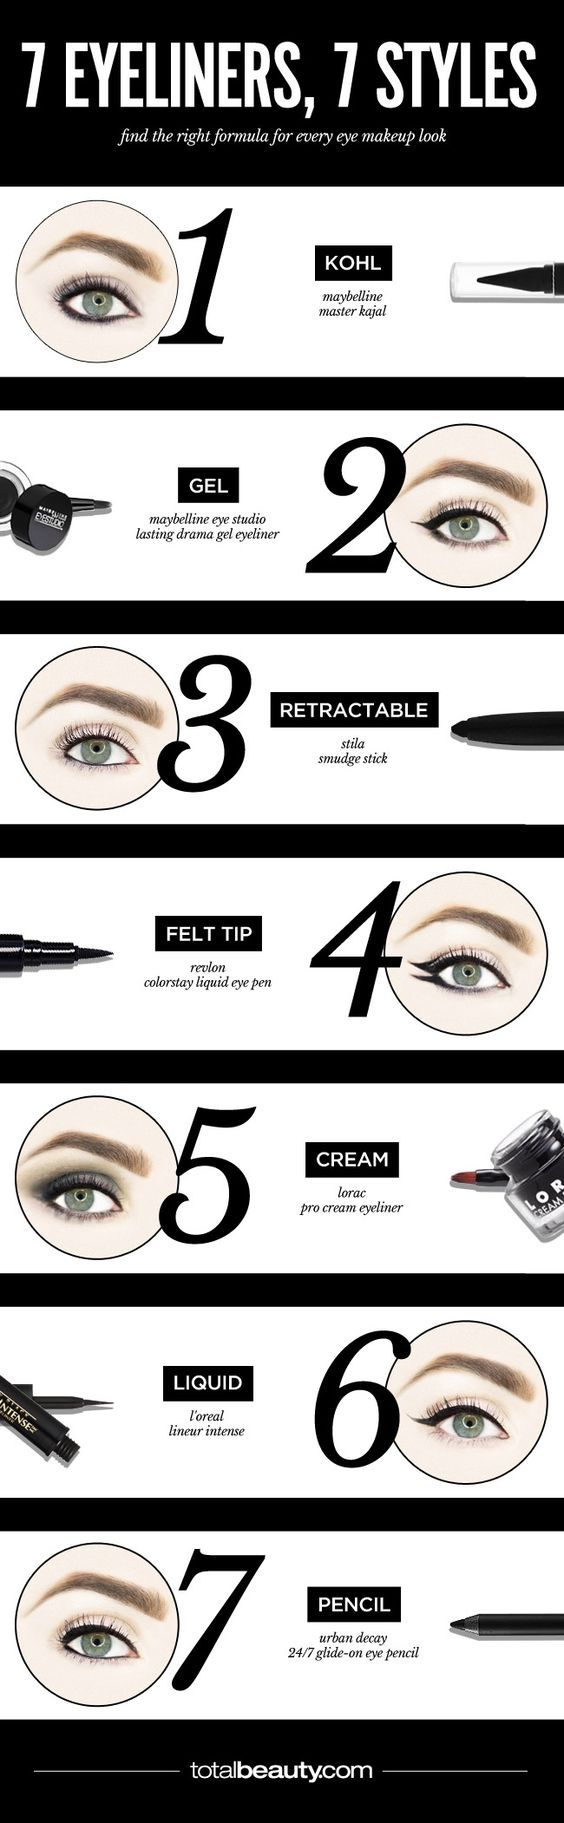 The Best Eyeliner for Your Cat Eye Rocker Smudge or Graphic Flick